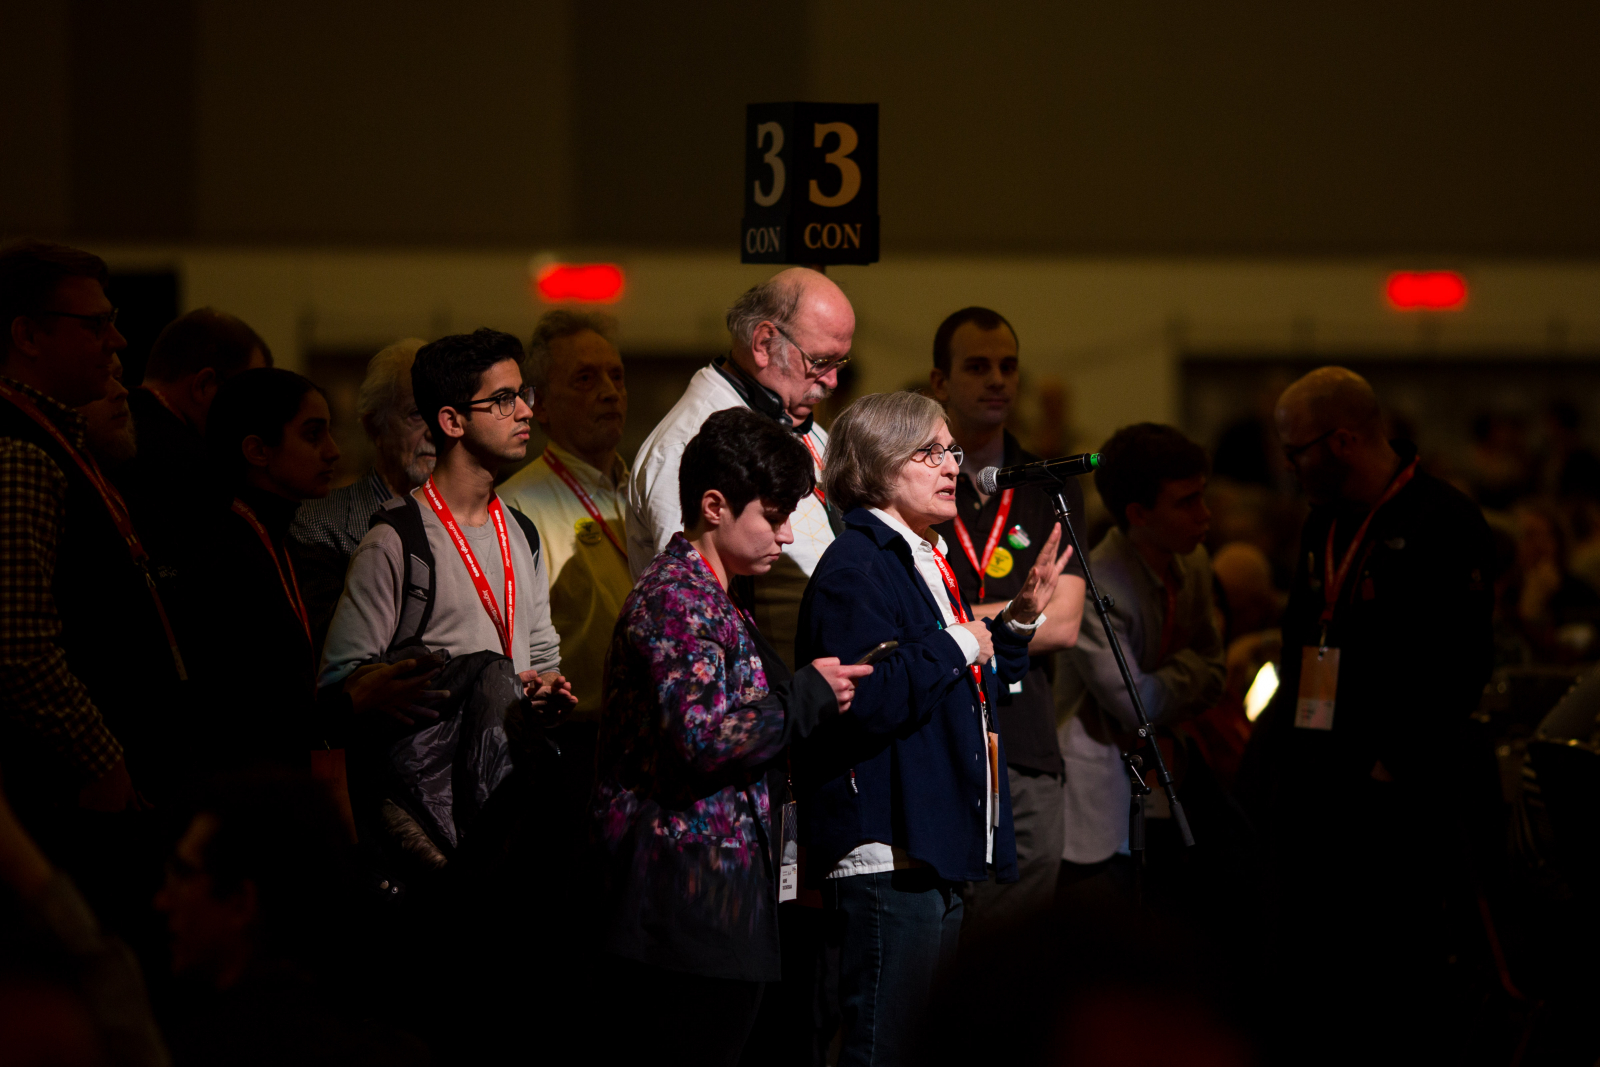 Delegates respond to resolutions at the NDP's national convention on Feb. 16, 2018. Photo by Alex Tétreault